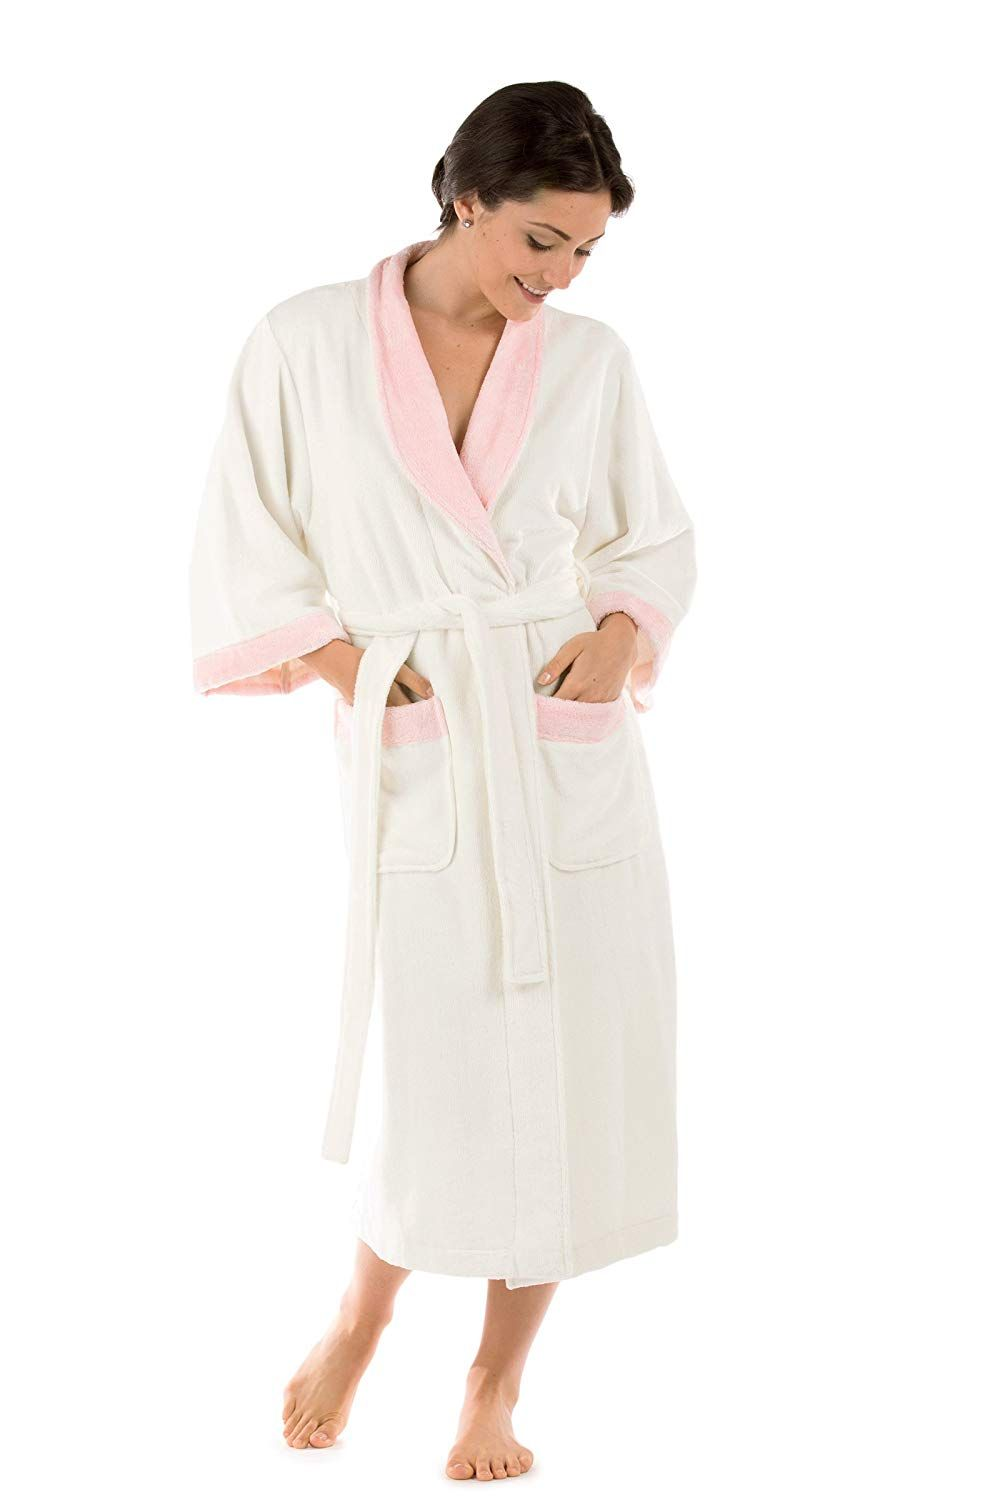 90dc46298b638 Women's Terry Cloth Bath Robe - Luxury Comfy Robes by Texere (Sitkimono,  Acai, 2X/3X) Luxury Soft Robes for Mom Sister Wife Daughter Hanukkah Gifts  ...